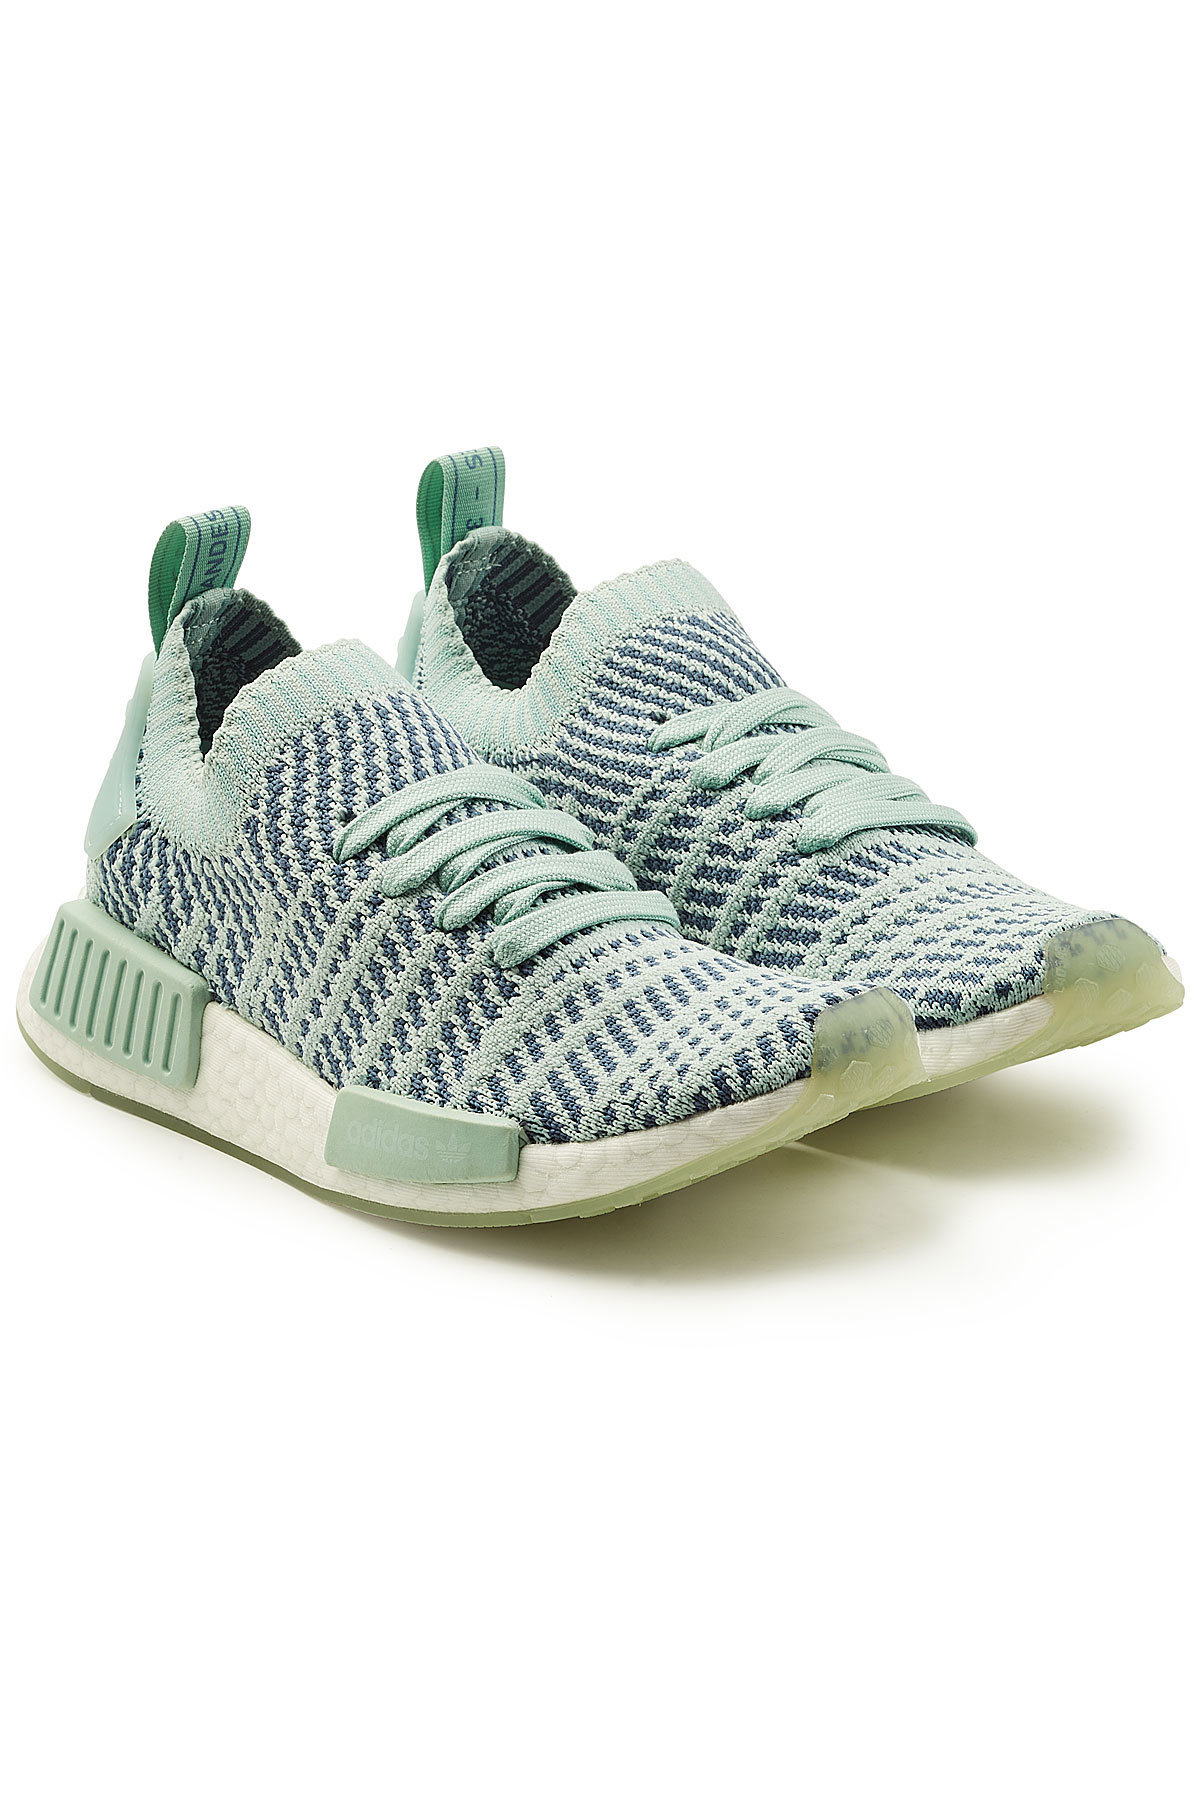 meet e13fa add1d ... spain adidas nmd r1 stlt primeknit sneakers gr. uk 6 60b84 13140